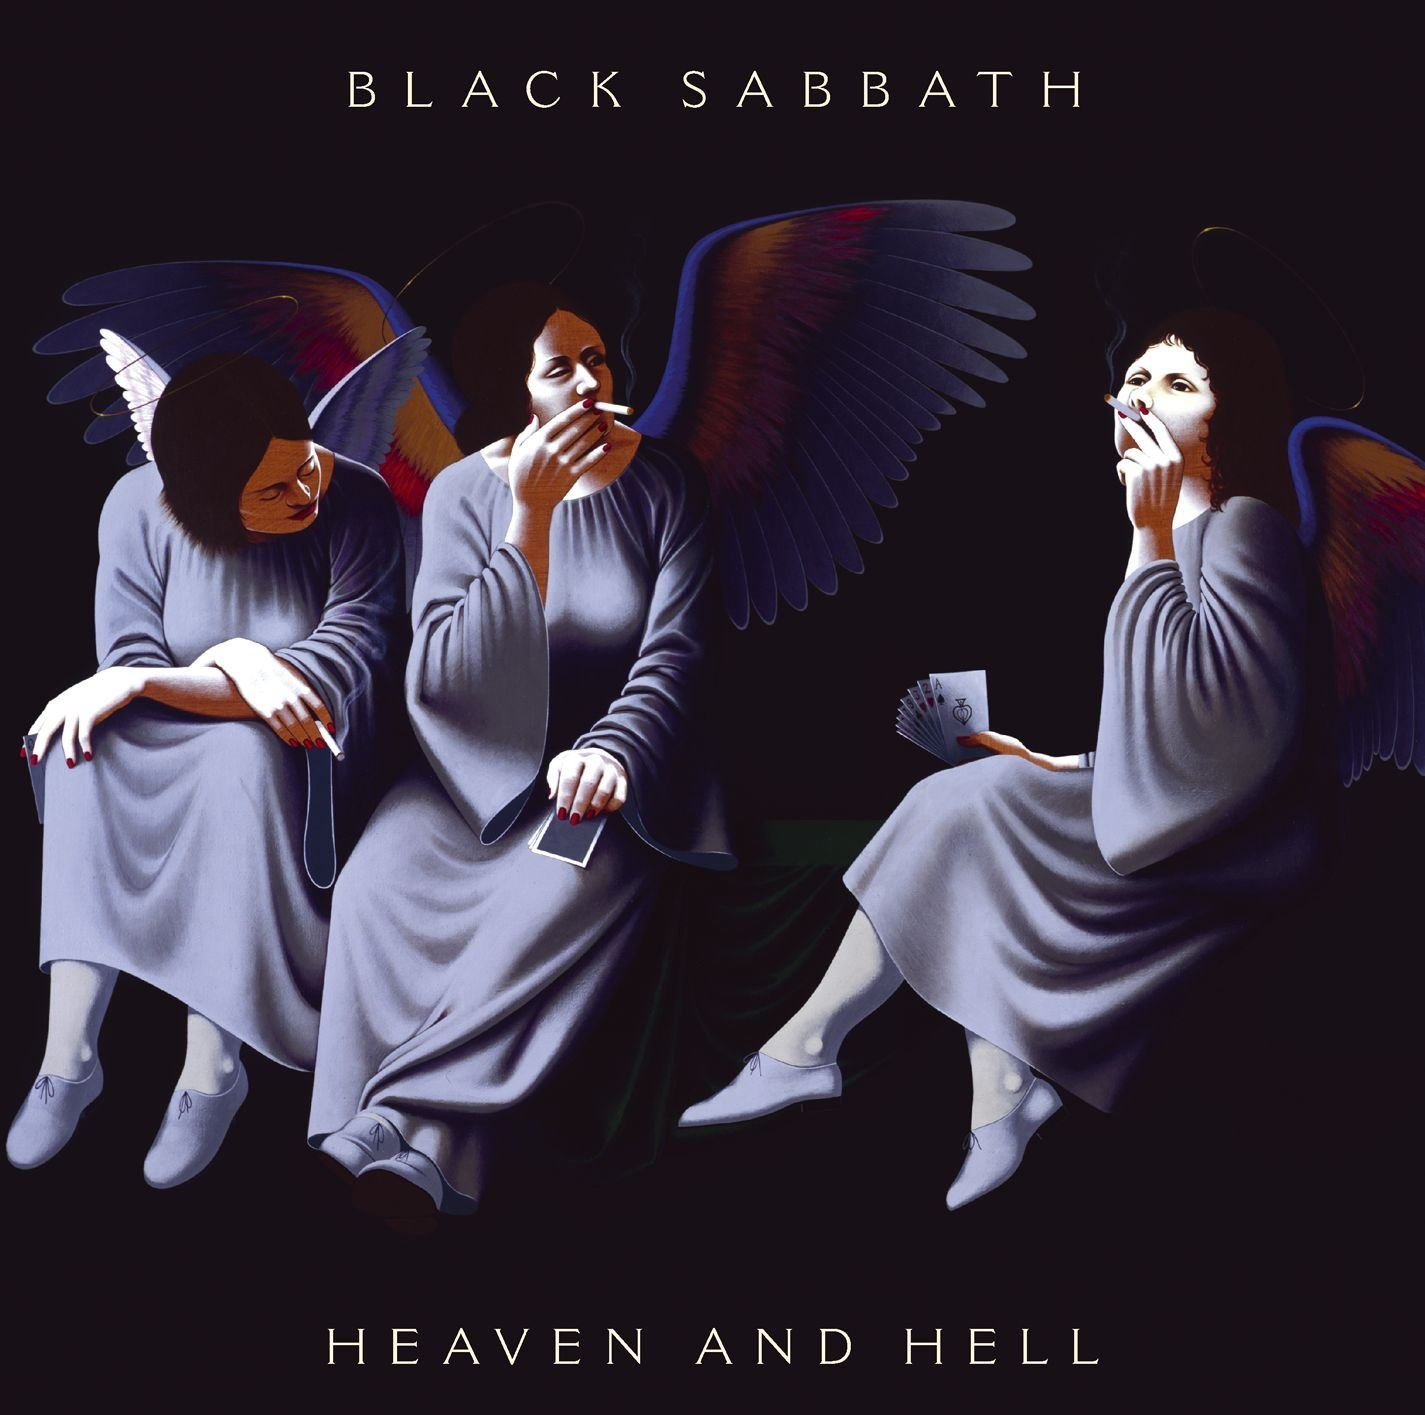 heaven_and_hell_album_cover.jpg